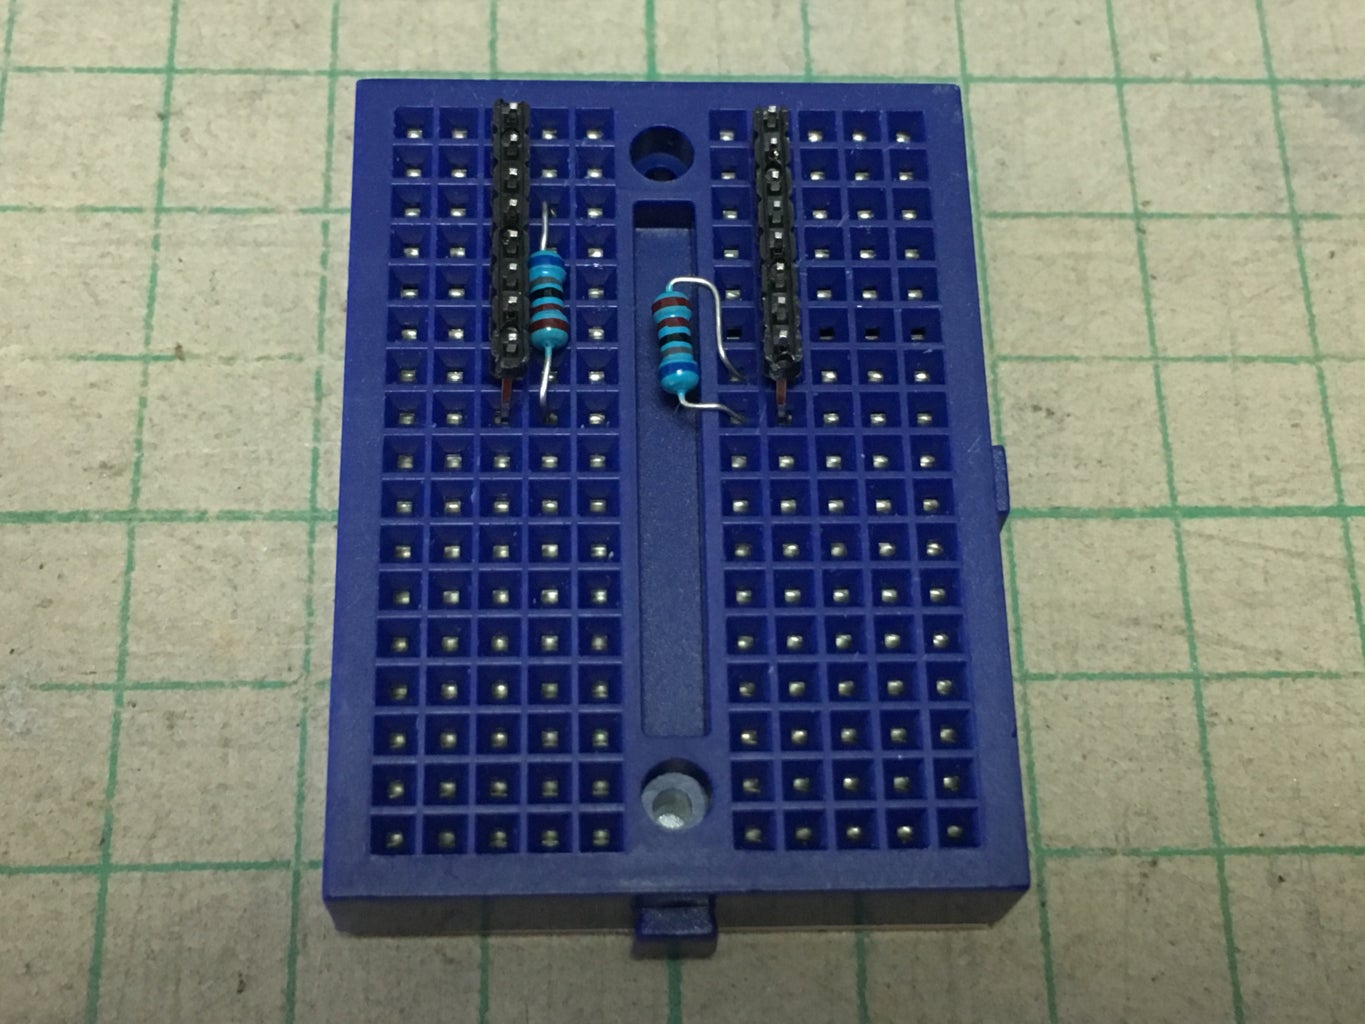 Install Pull Up and Pull Down Resistor